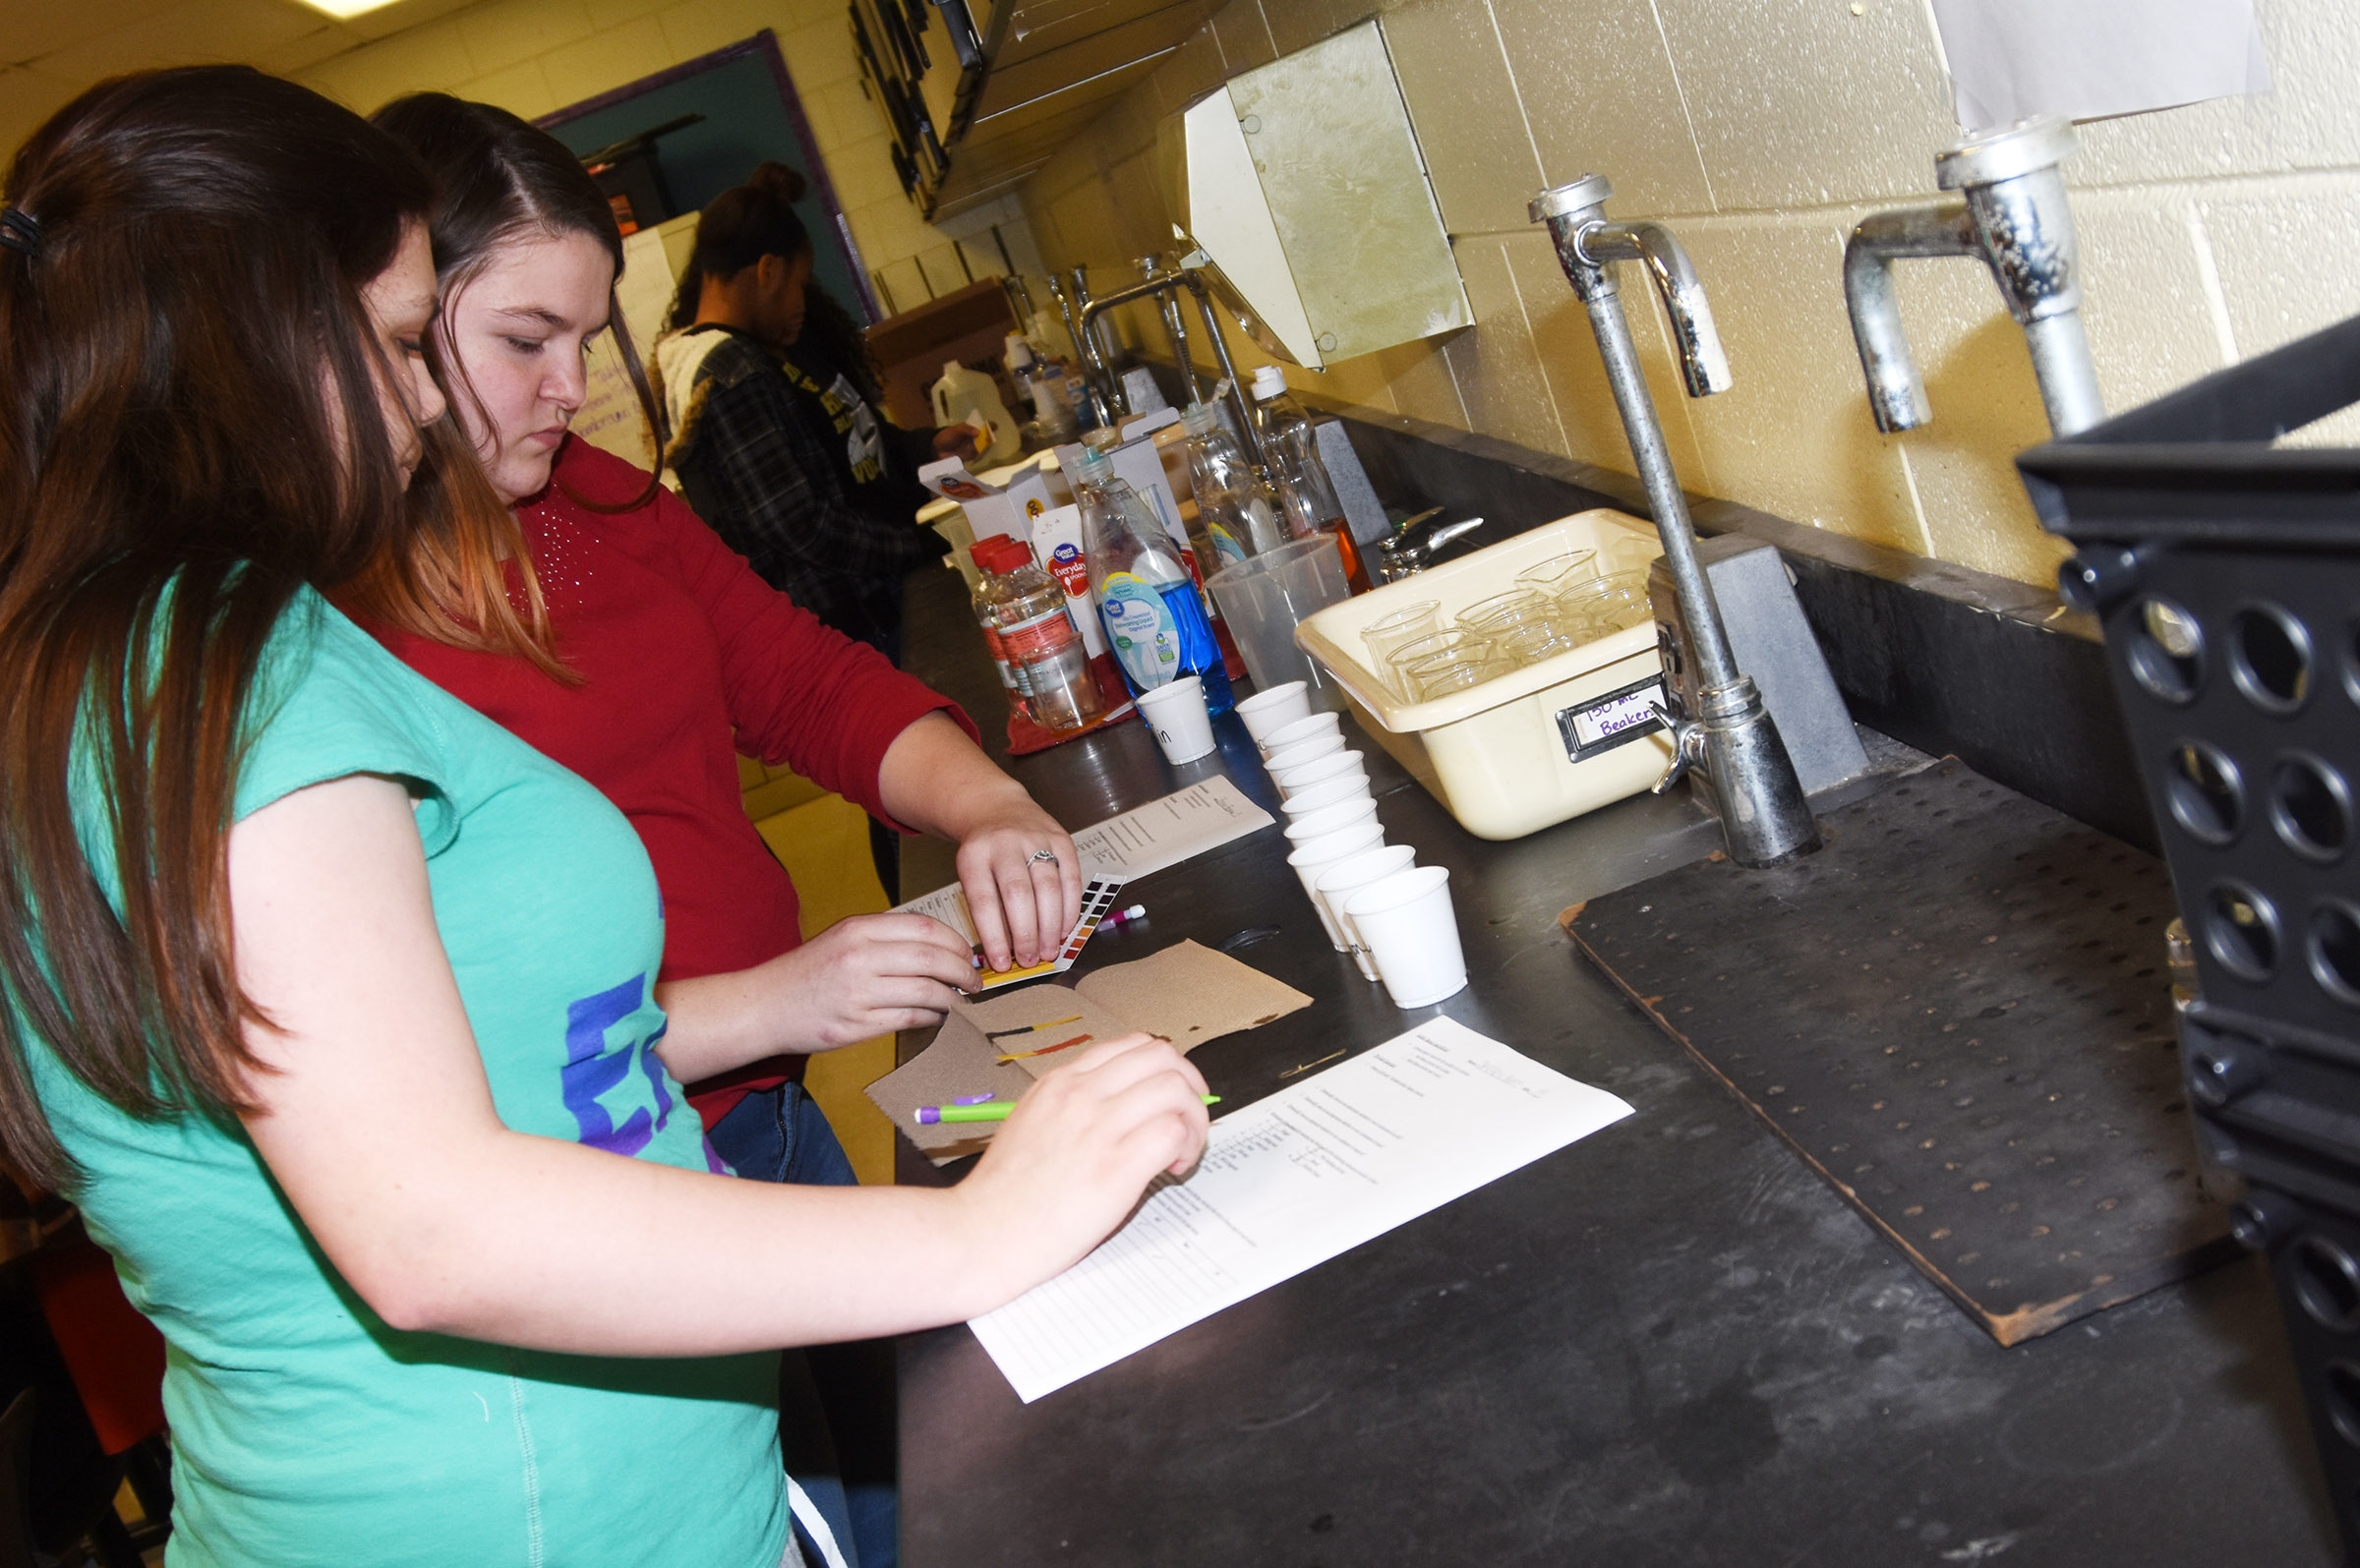 CHS sophomores Shelby Hunt, at left, and Briana Brown perform a litmus test.